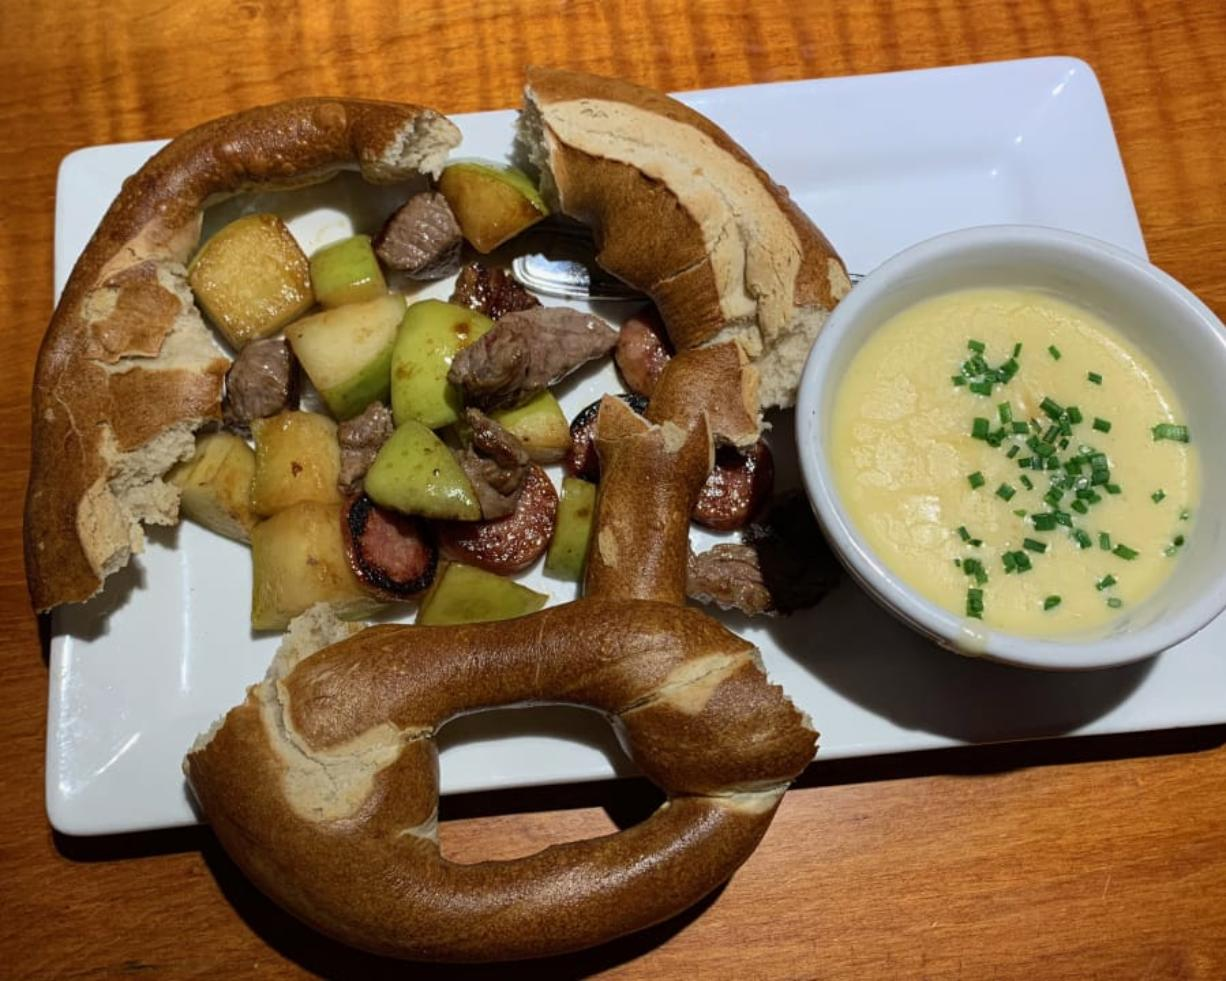 Beer Cheese Fondue at Fargher Lakehouse in Yacolt was unattractively plated.